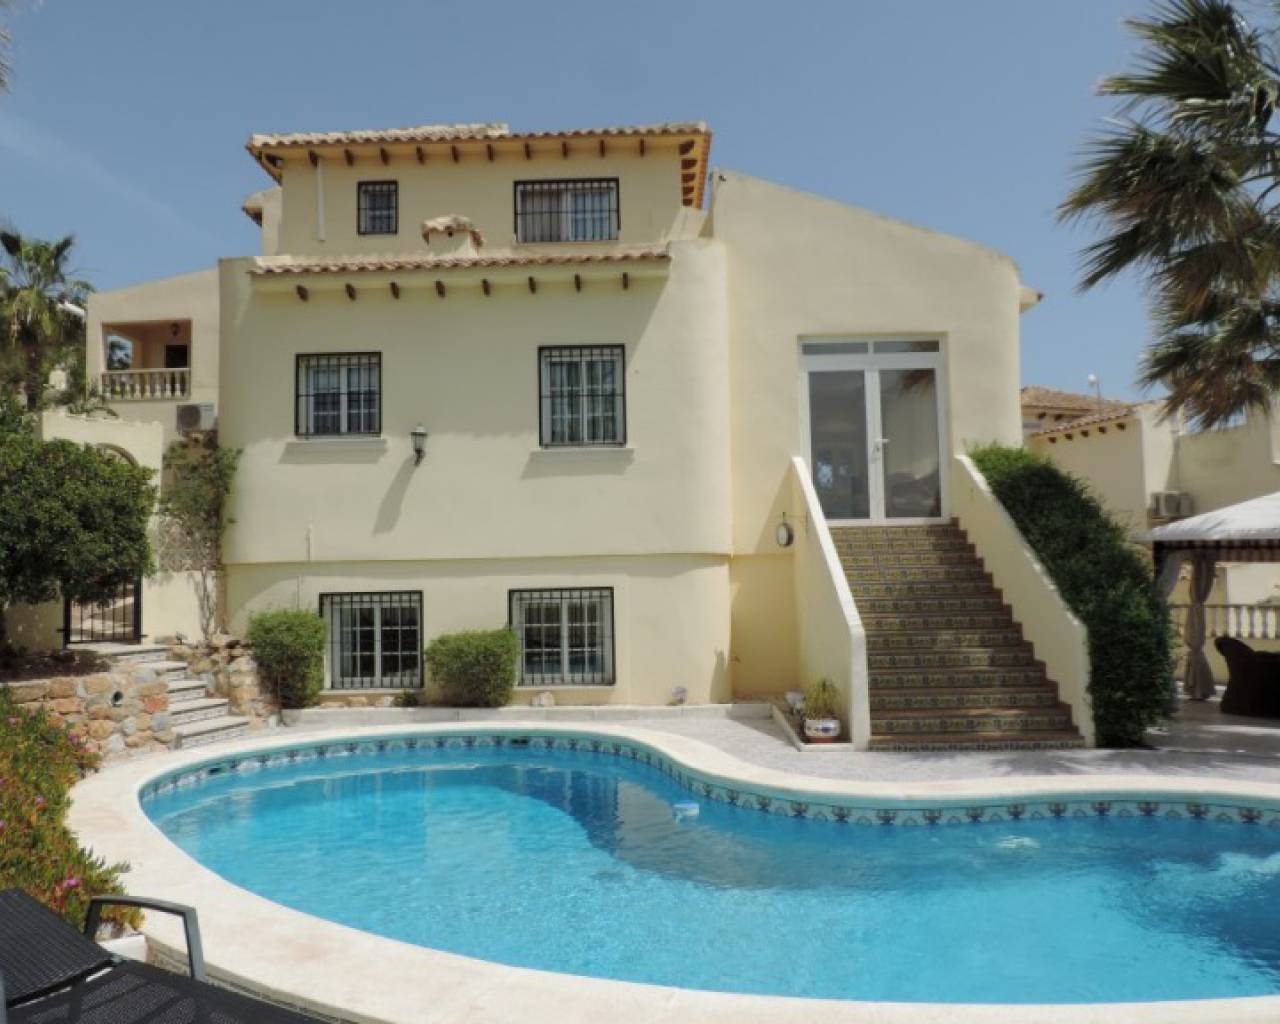 Detached Villa - Sale - Orihuela Costa - Las Ramblas